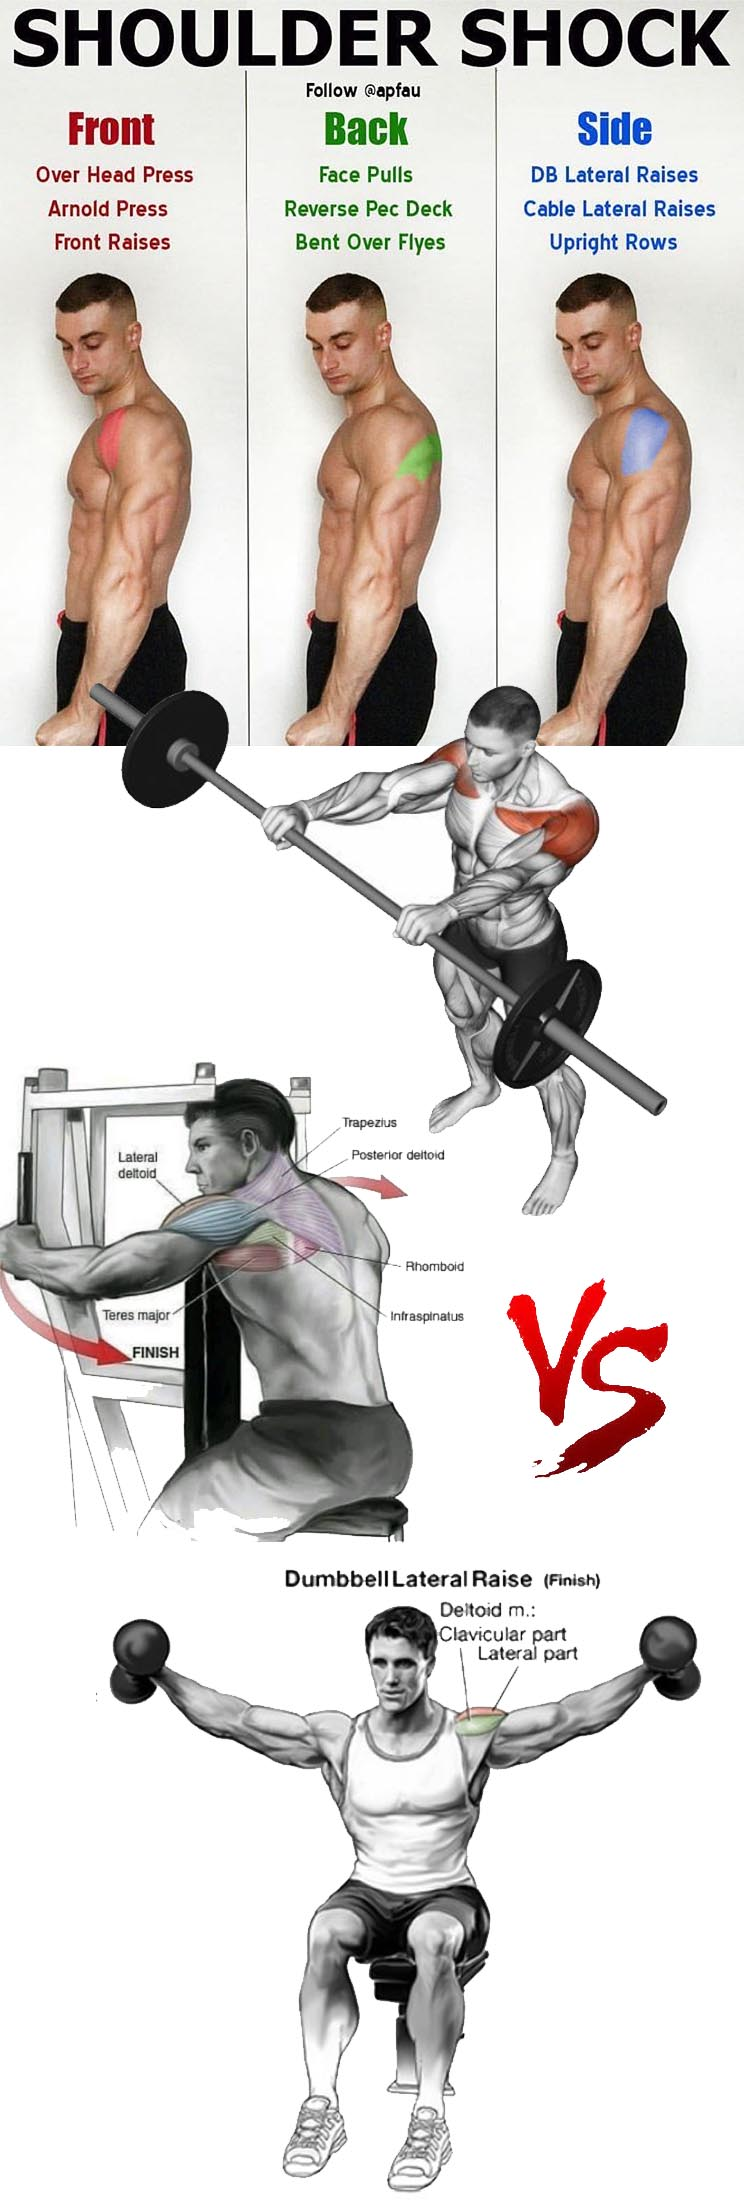 SHOULDER SHOCK | FRONT | BACK | SIDE SHOULDERS